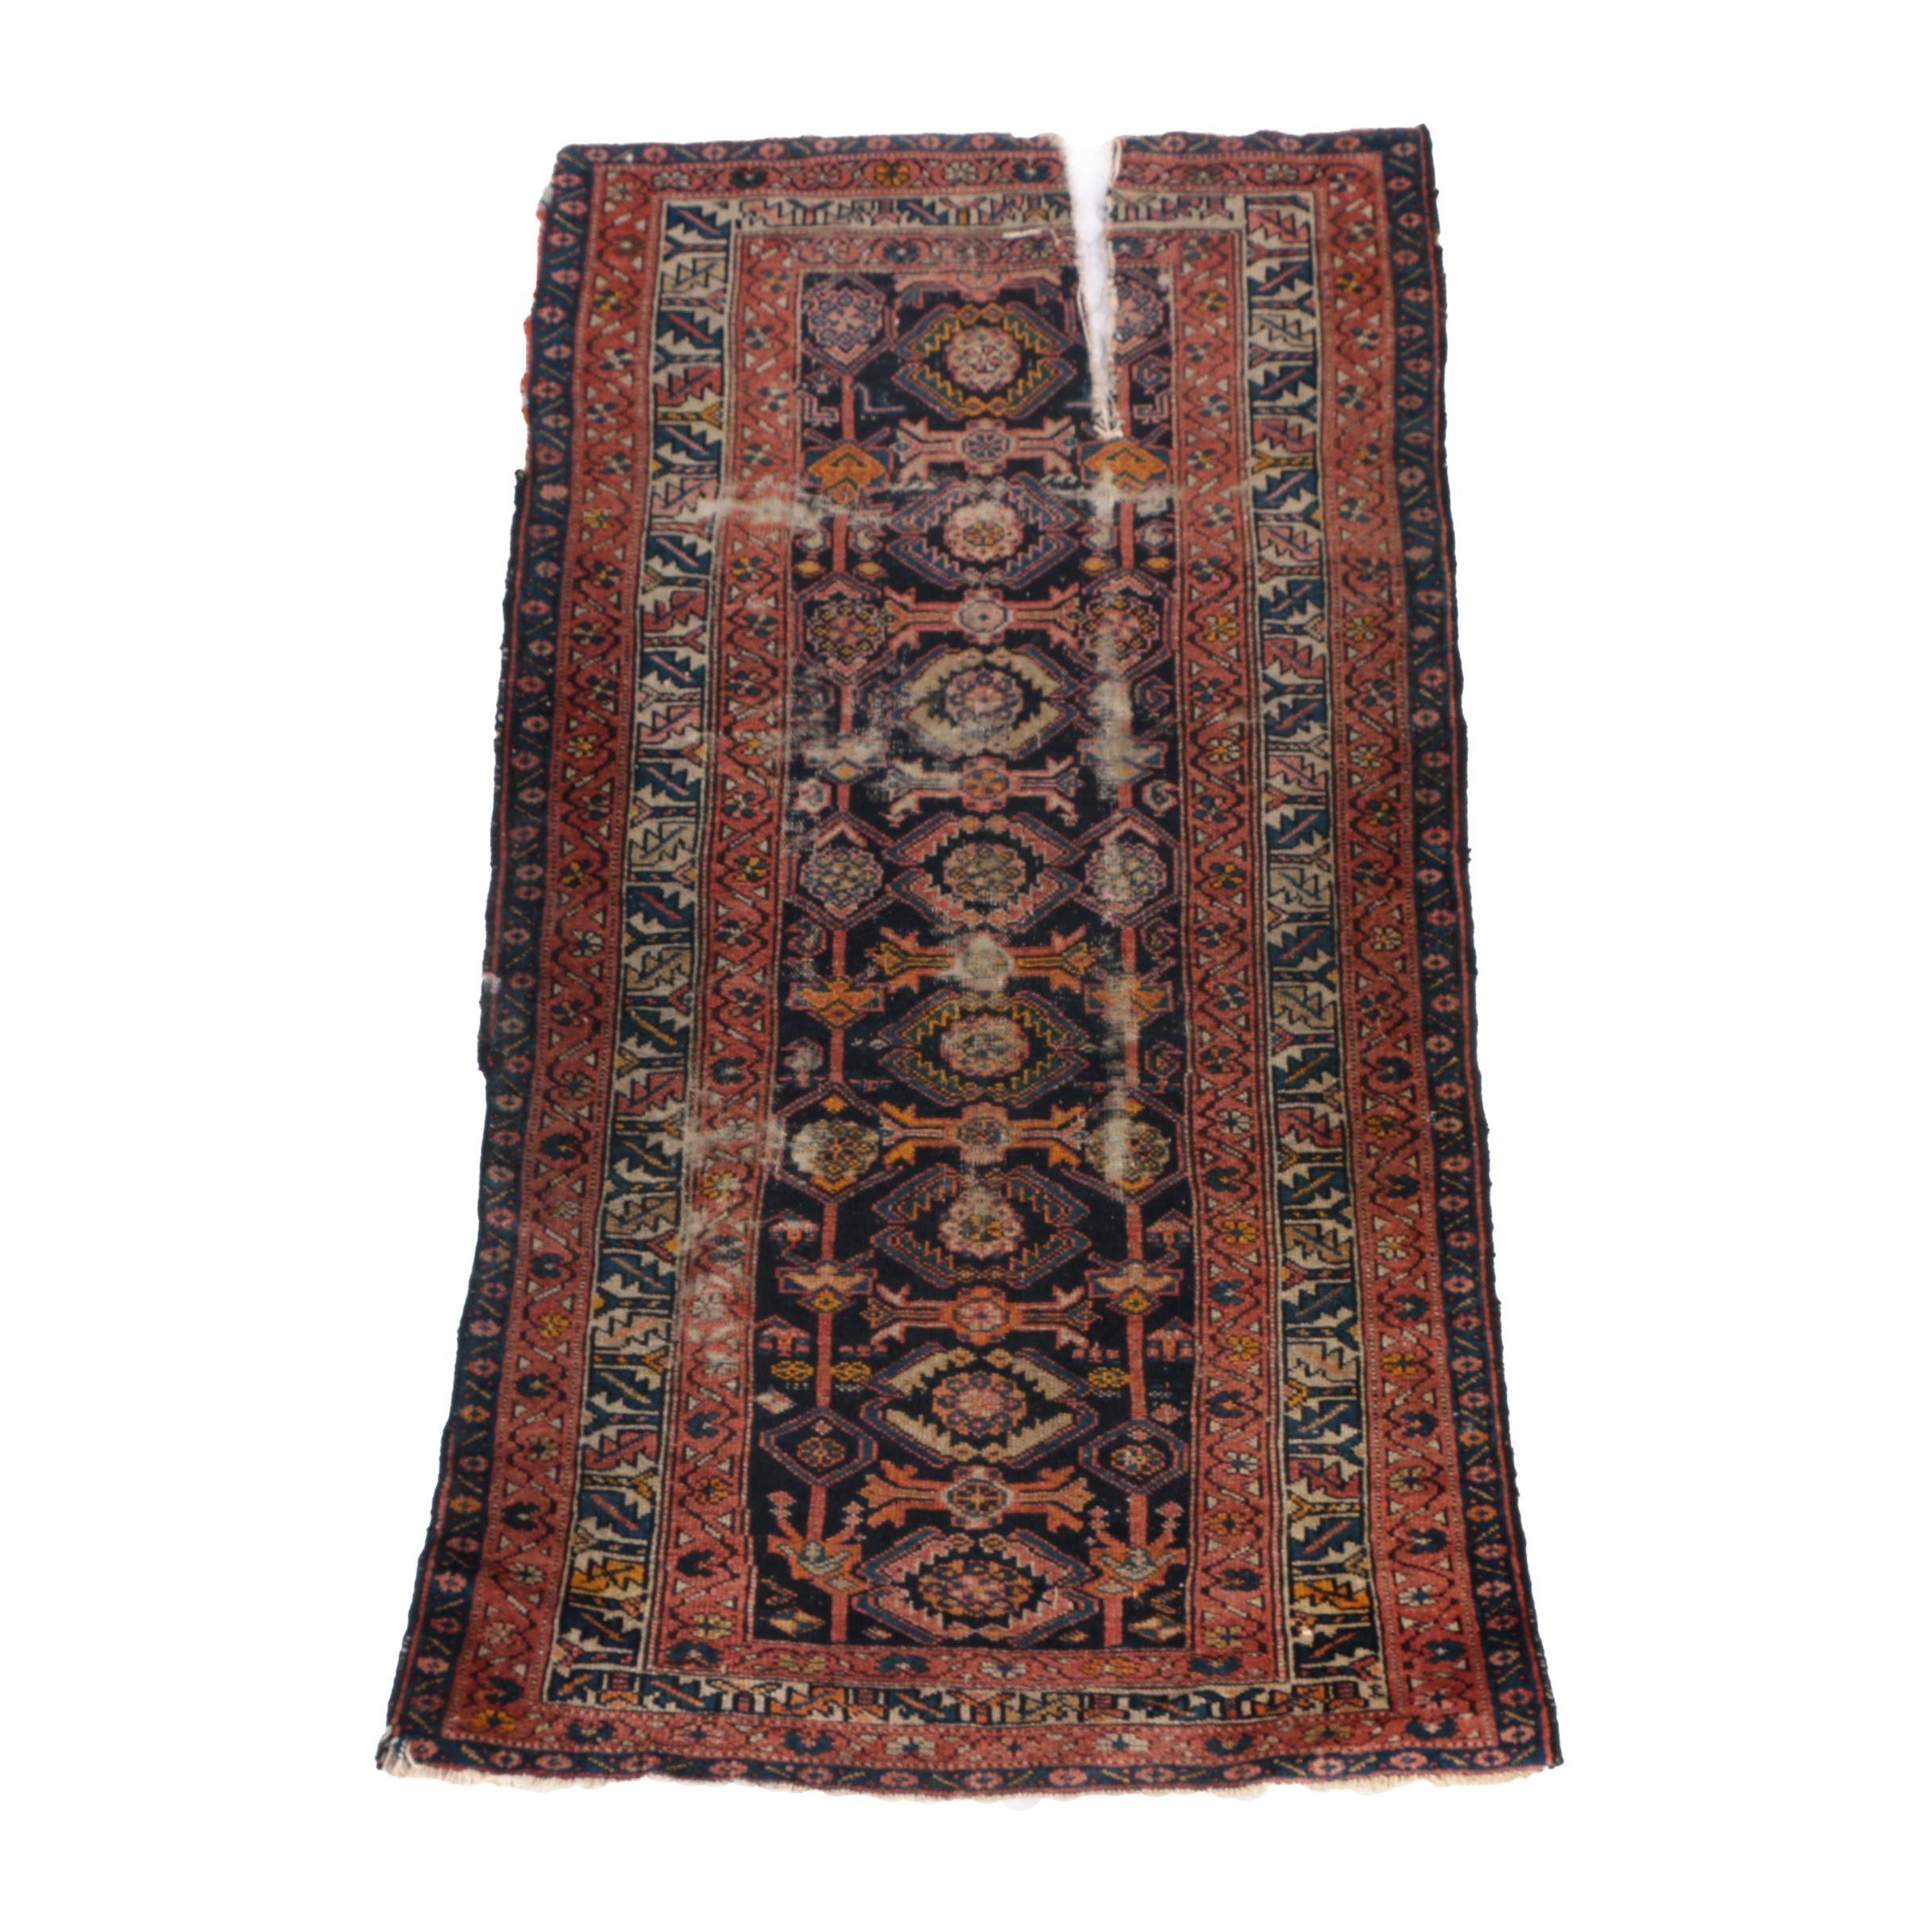 Vintage Hand-Knotted Persian Area Rug